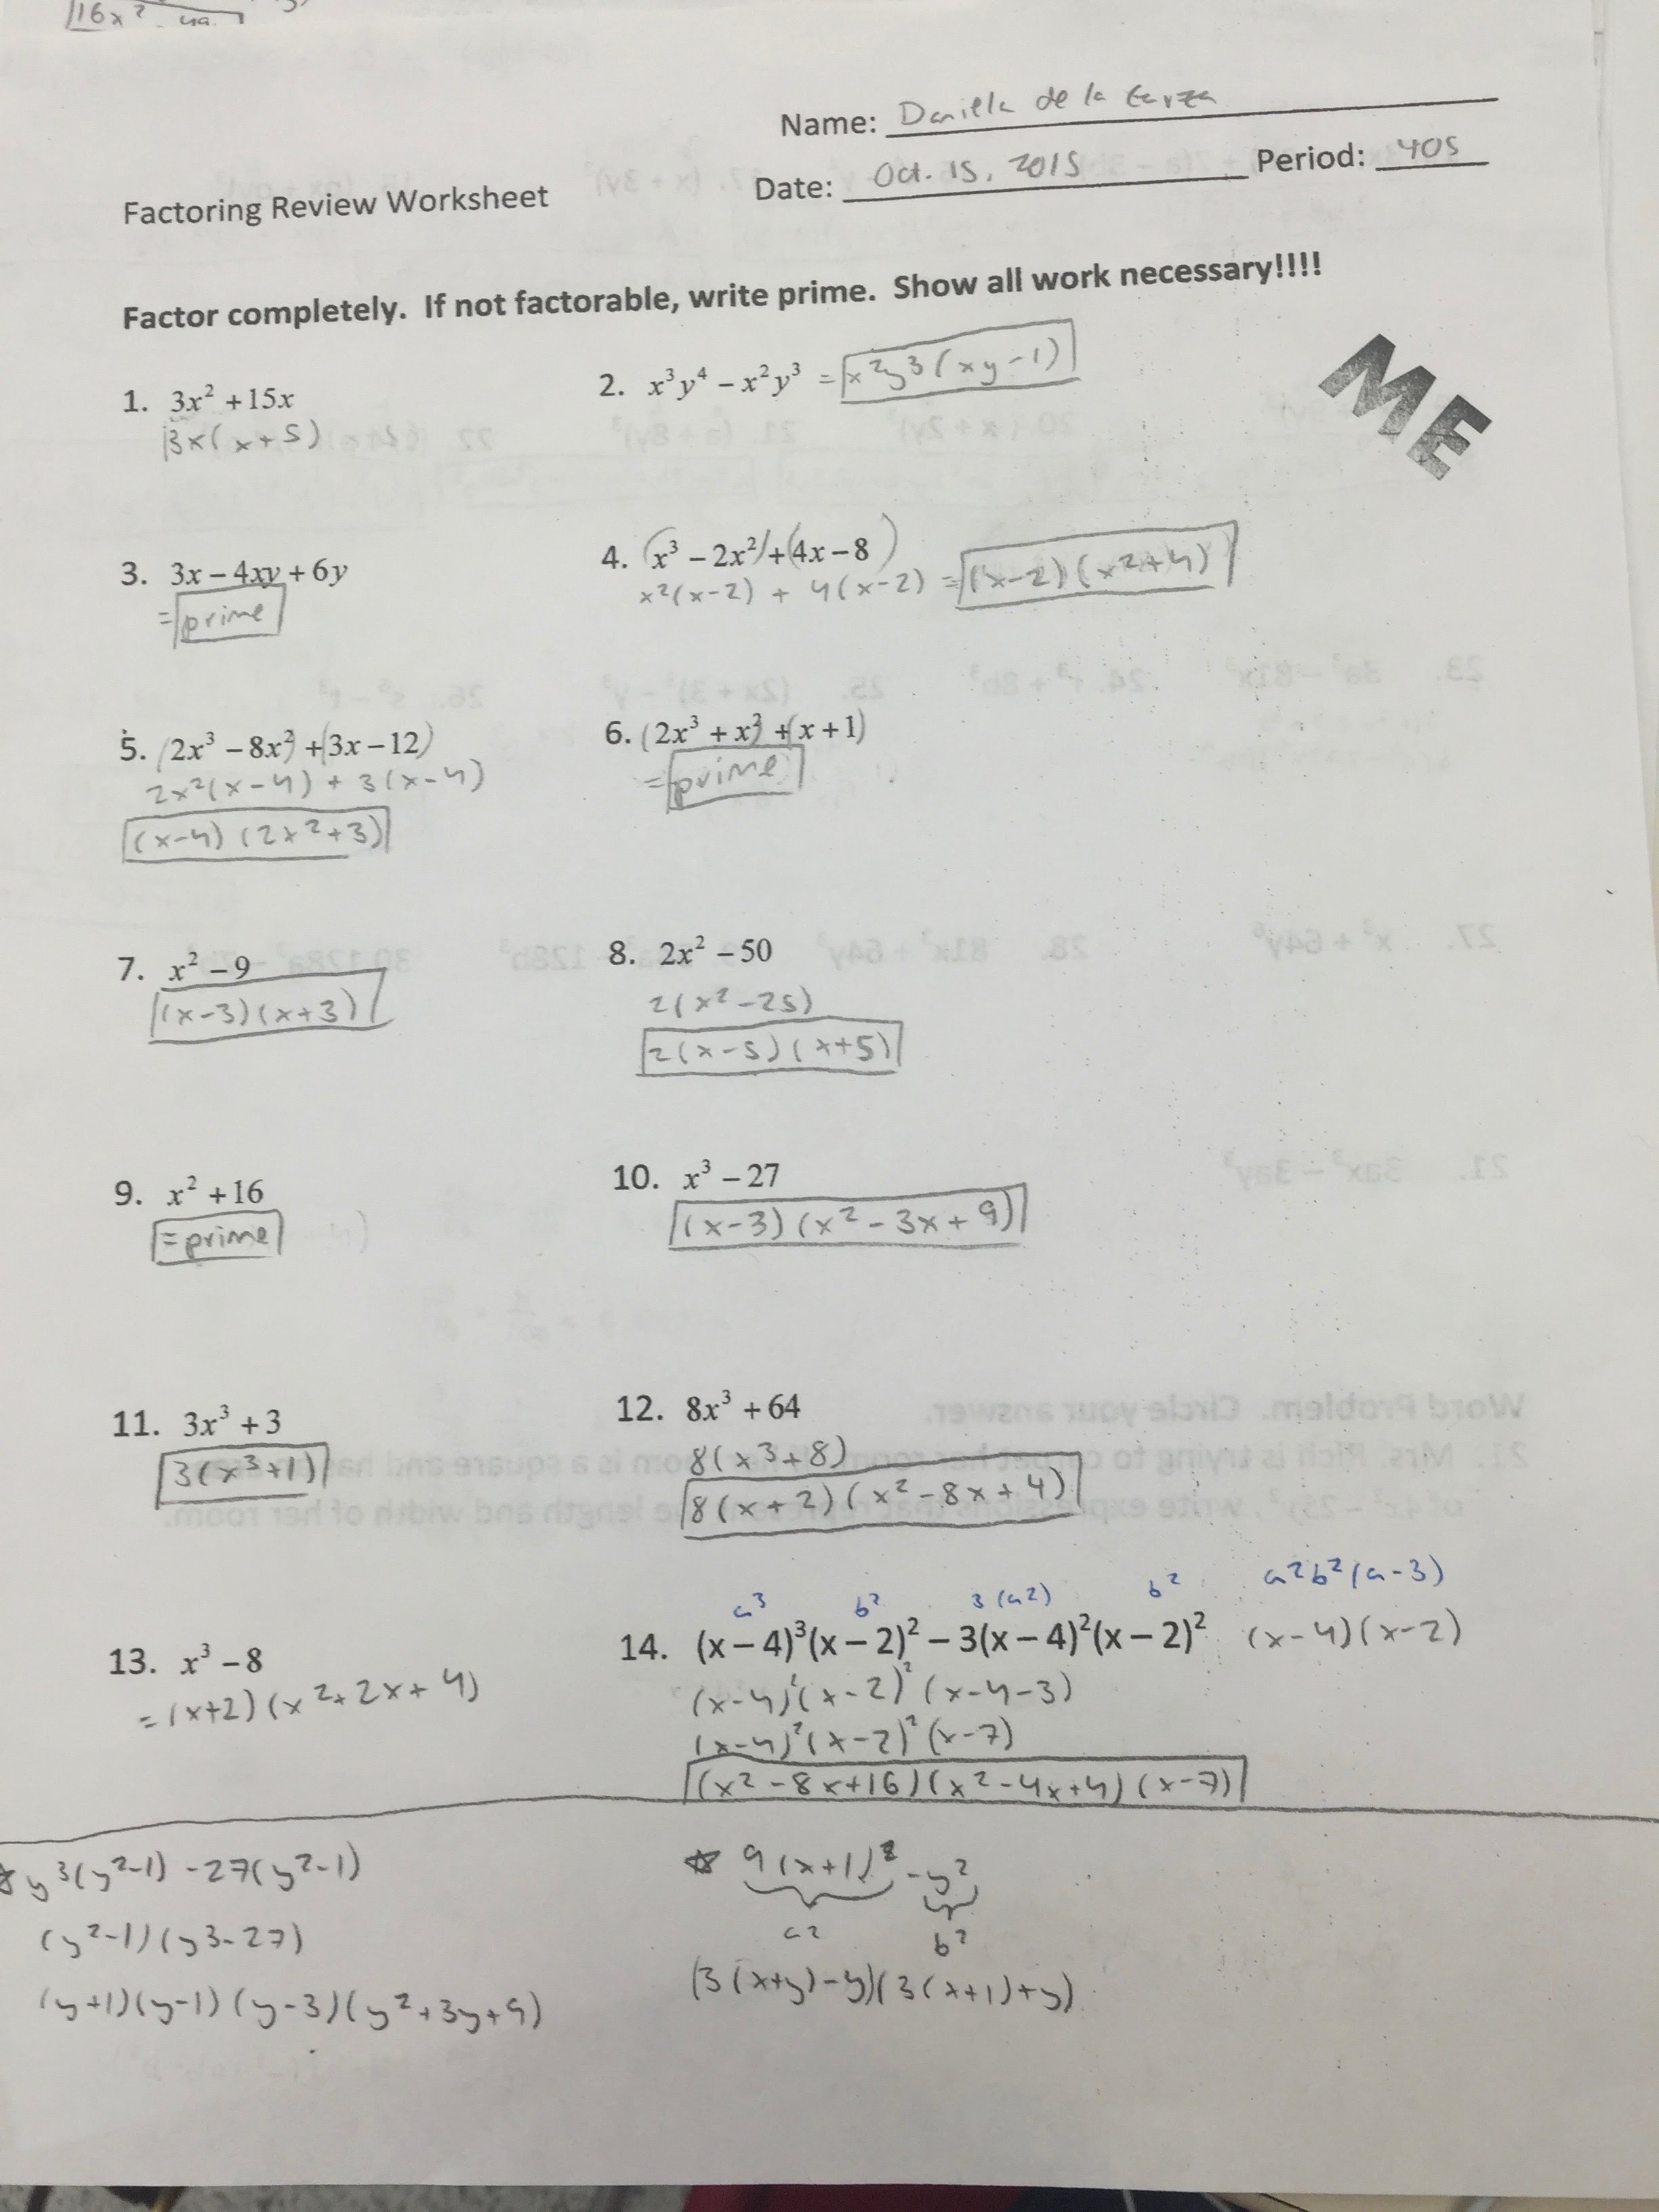 Printables Factoring Review Worksheet factoring review worksheet intrepidpath daniela de la garza 39 s math portfolio